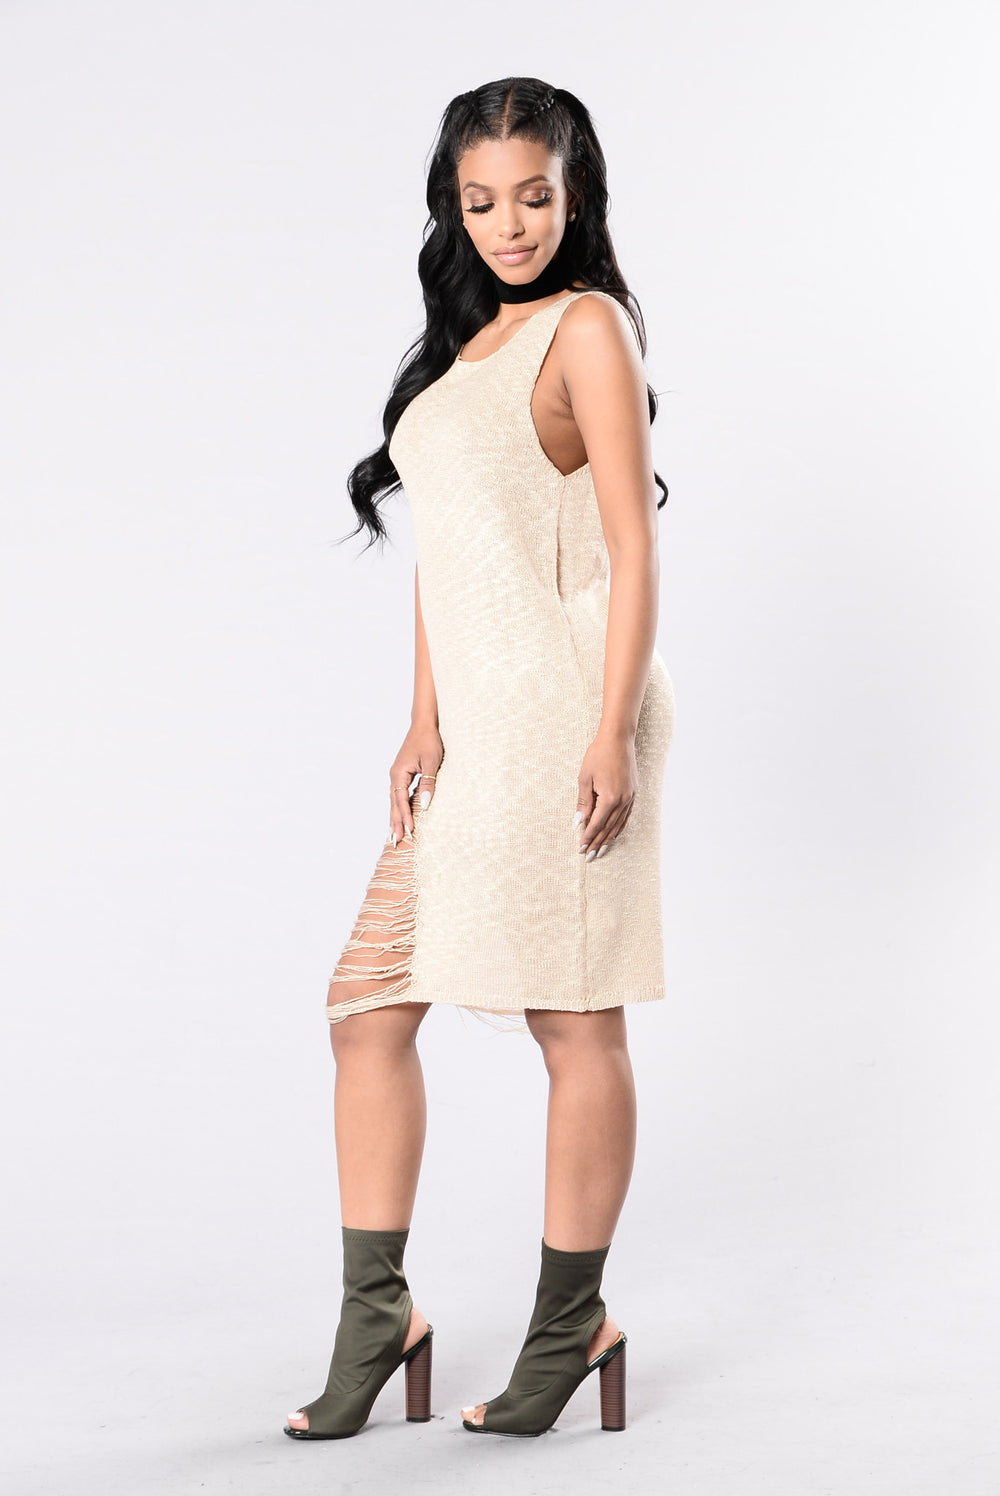 So Much Love To Give Dress - Taupe